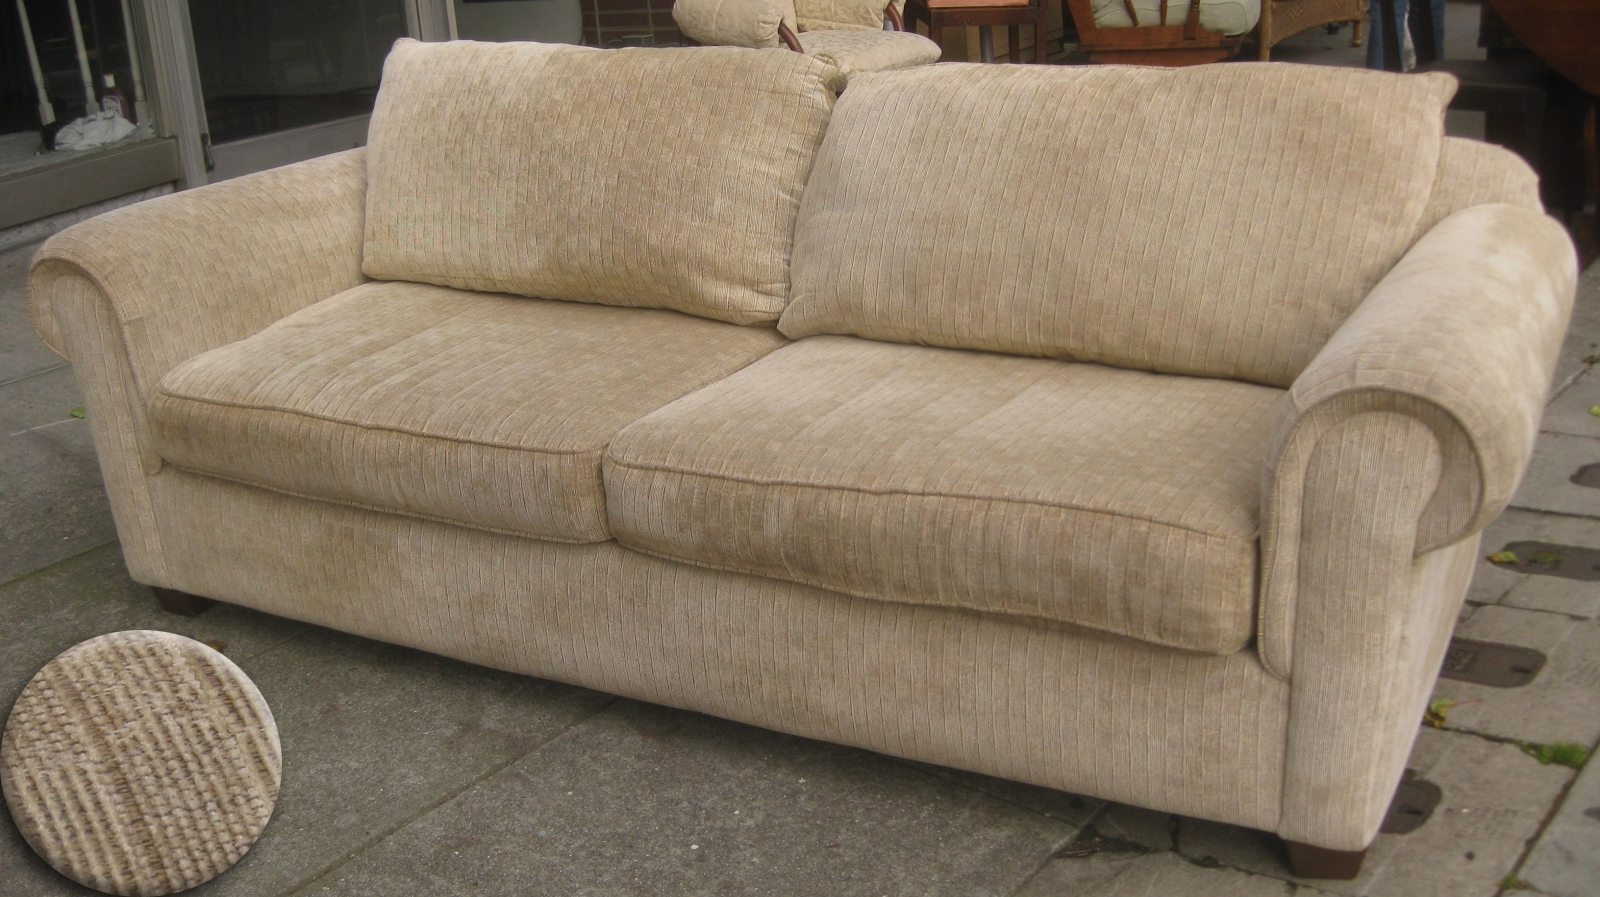 Widely Used Uhuru Furniture & Collectibles: Sold – Soft Sofa – $80 With Regard To Soft Sofas (View 15 of 15)